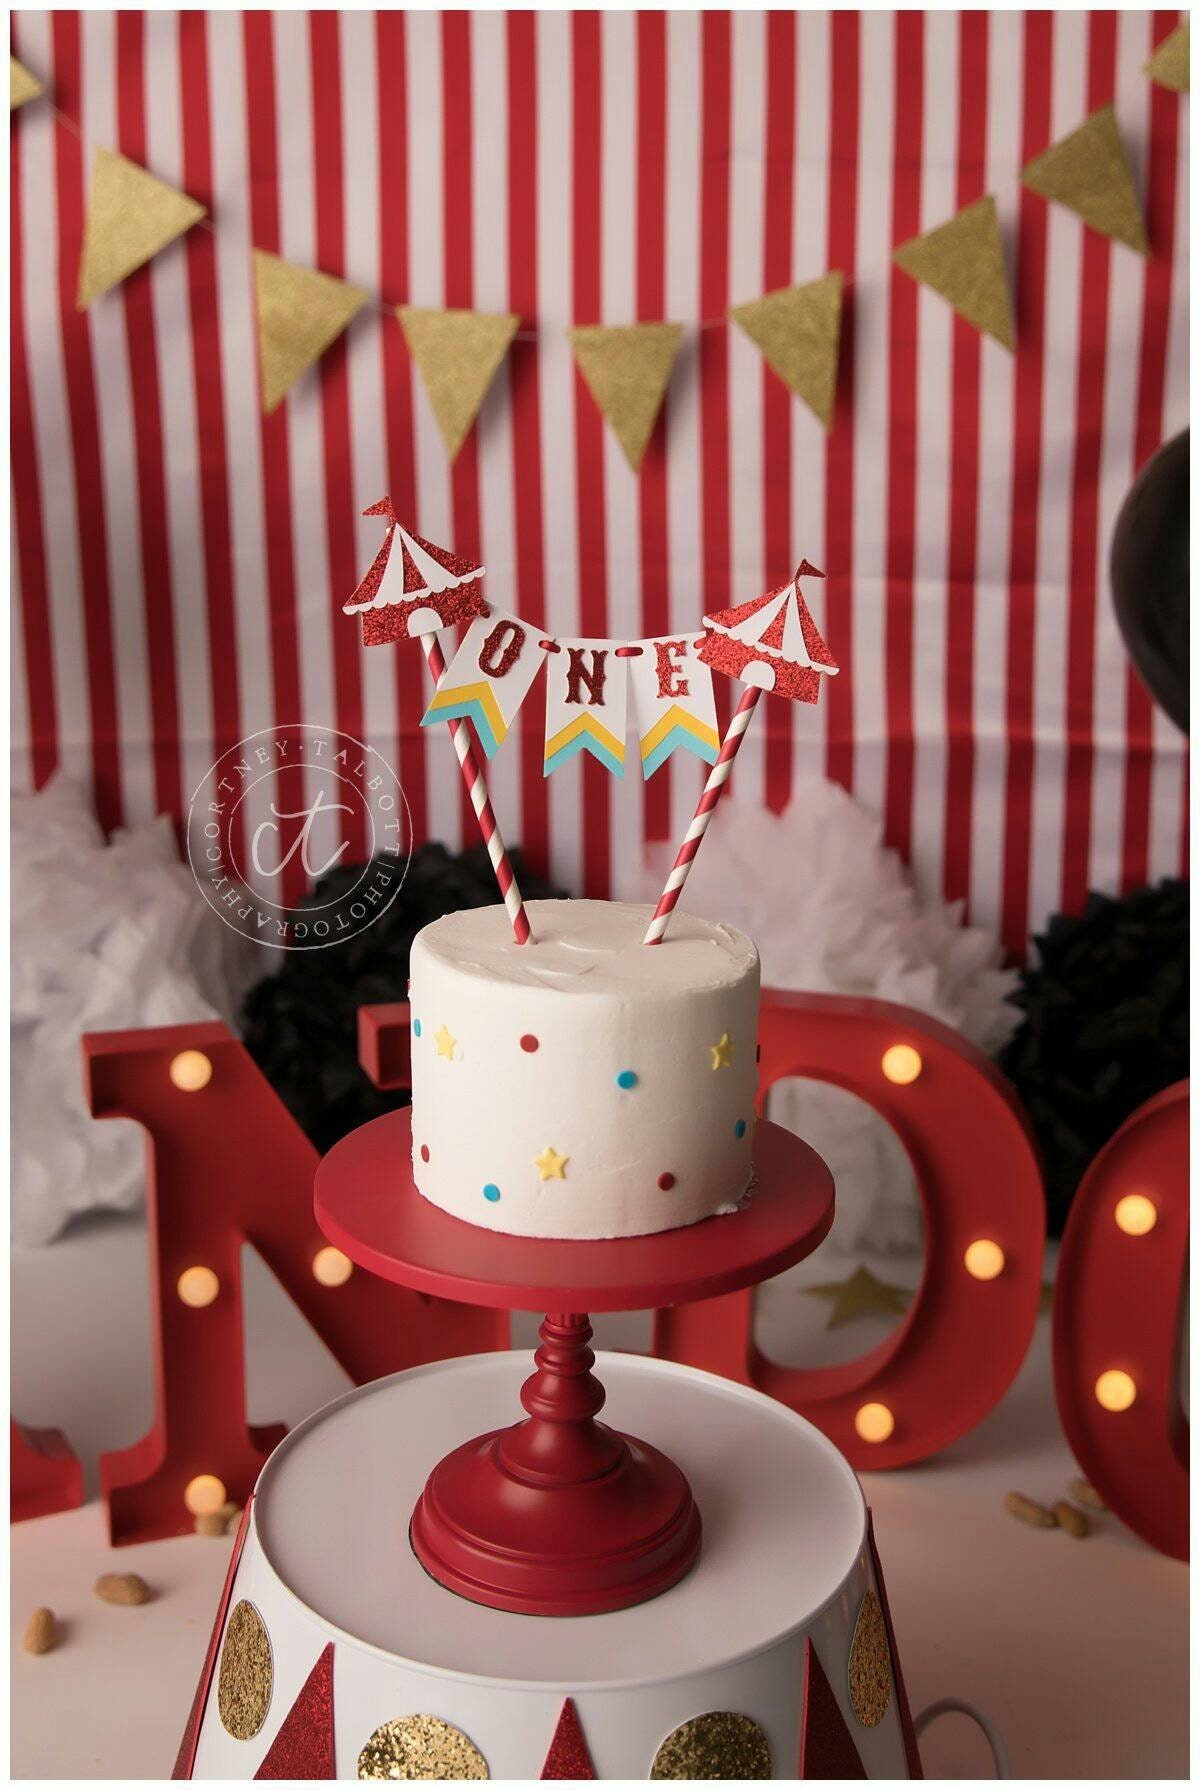 Candy Land or Rainbow themed Party amazing buntings 2nd Birthday Bunting Cake Topper for Circus Adjustable Length